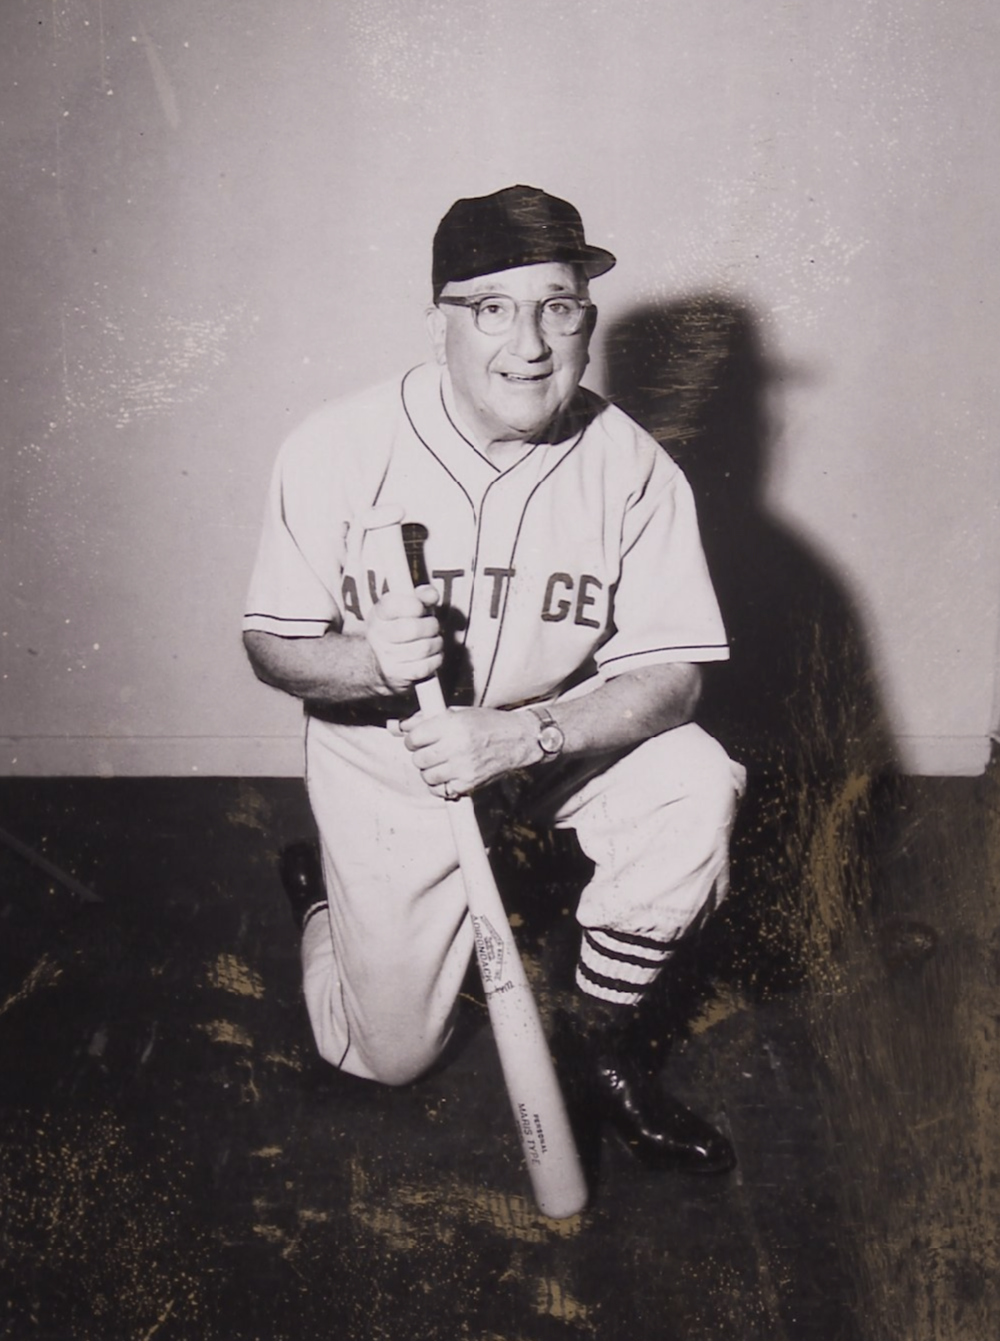 Bill Savitt in a Savitt Gems uniform, 1966.